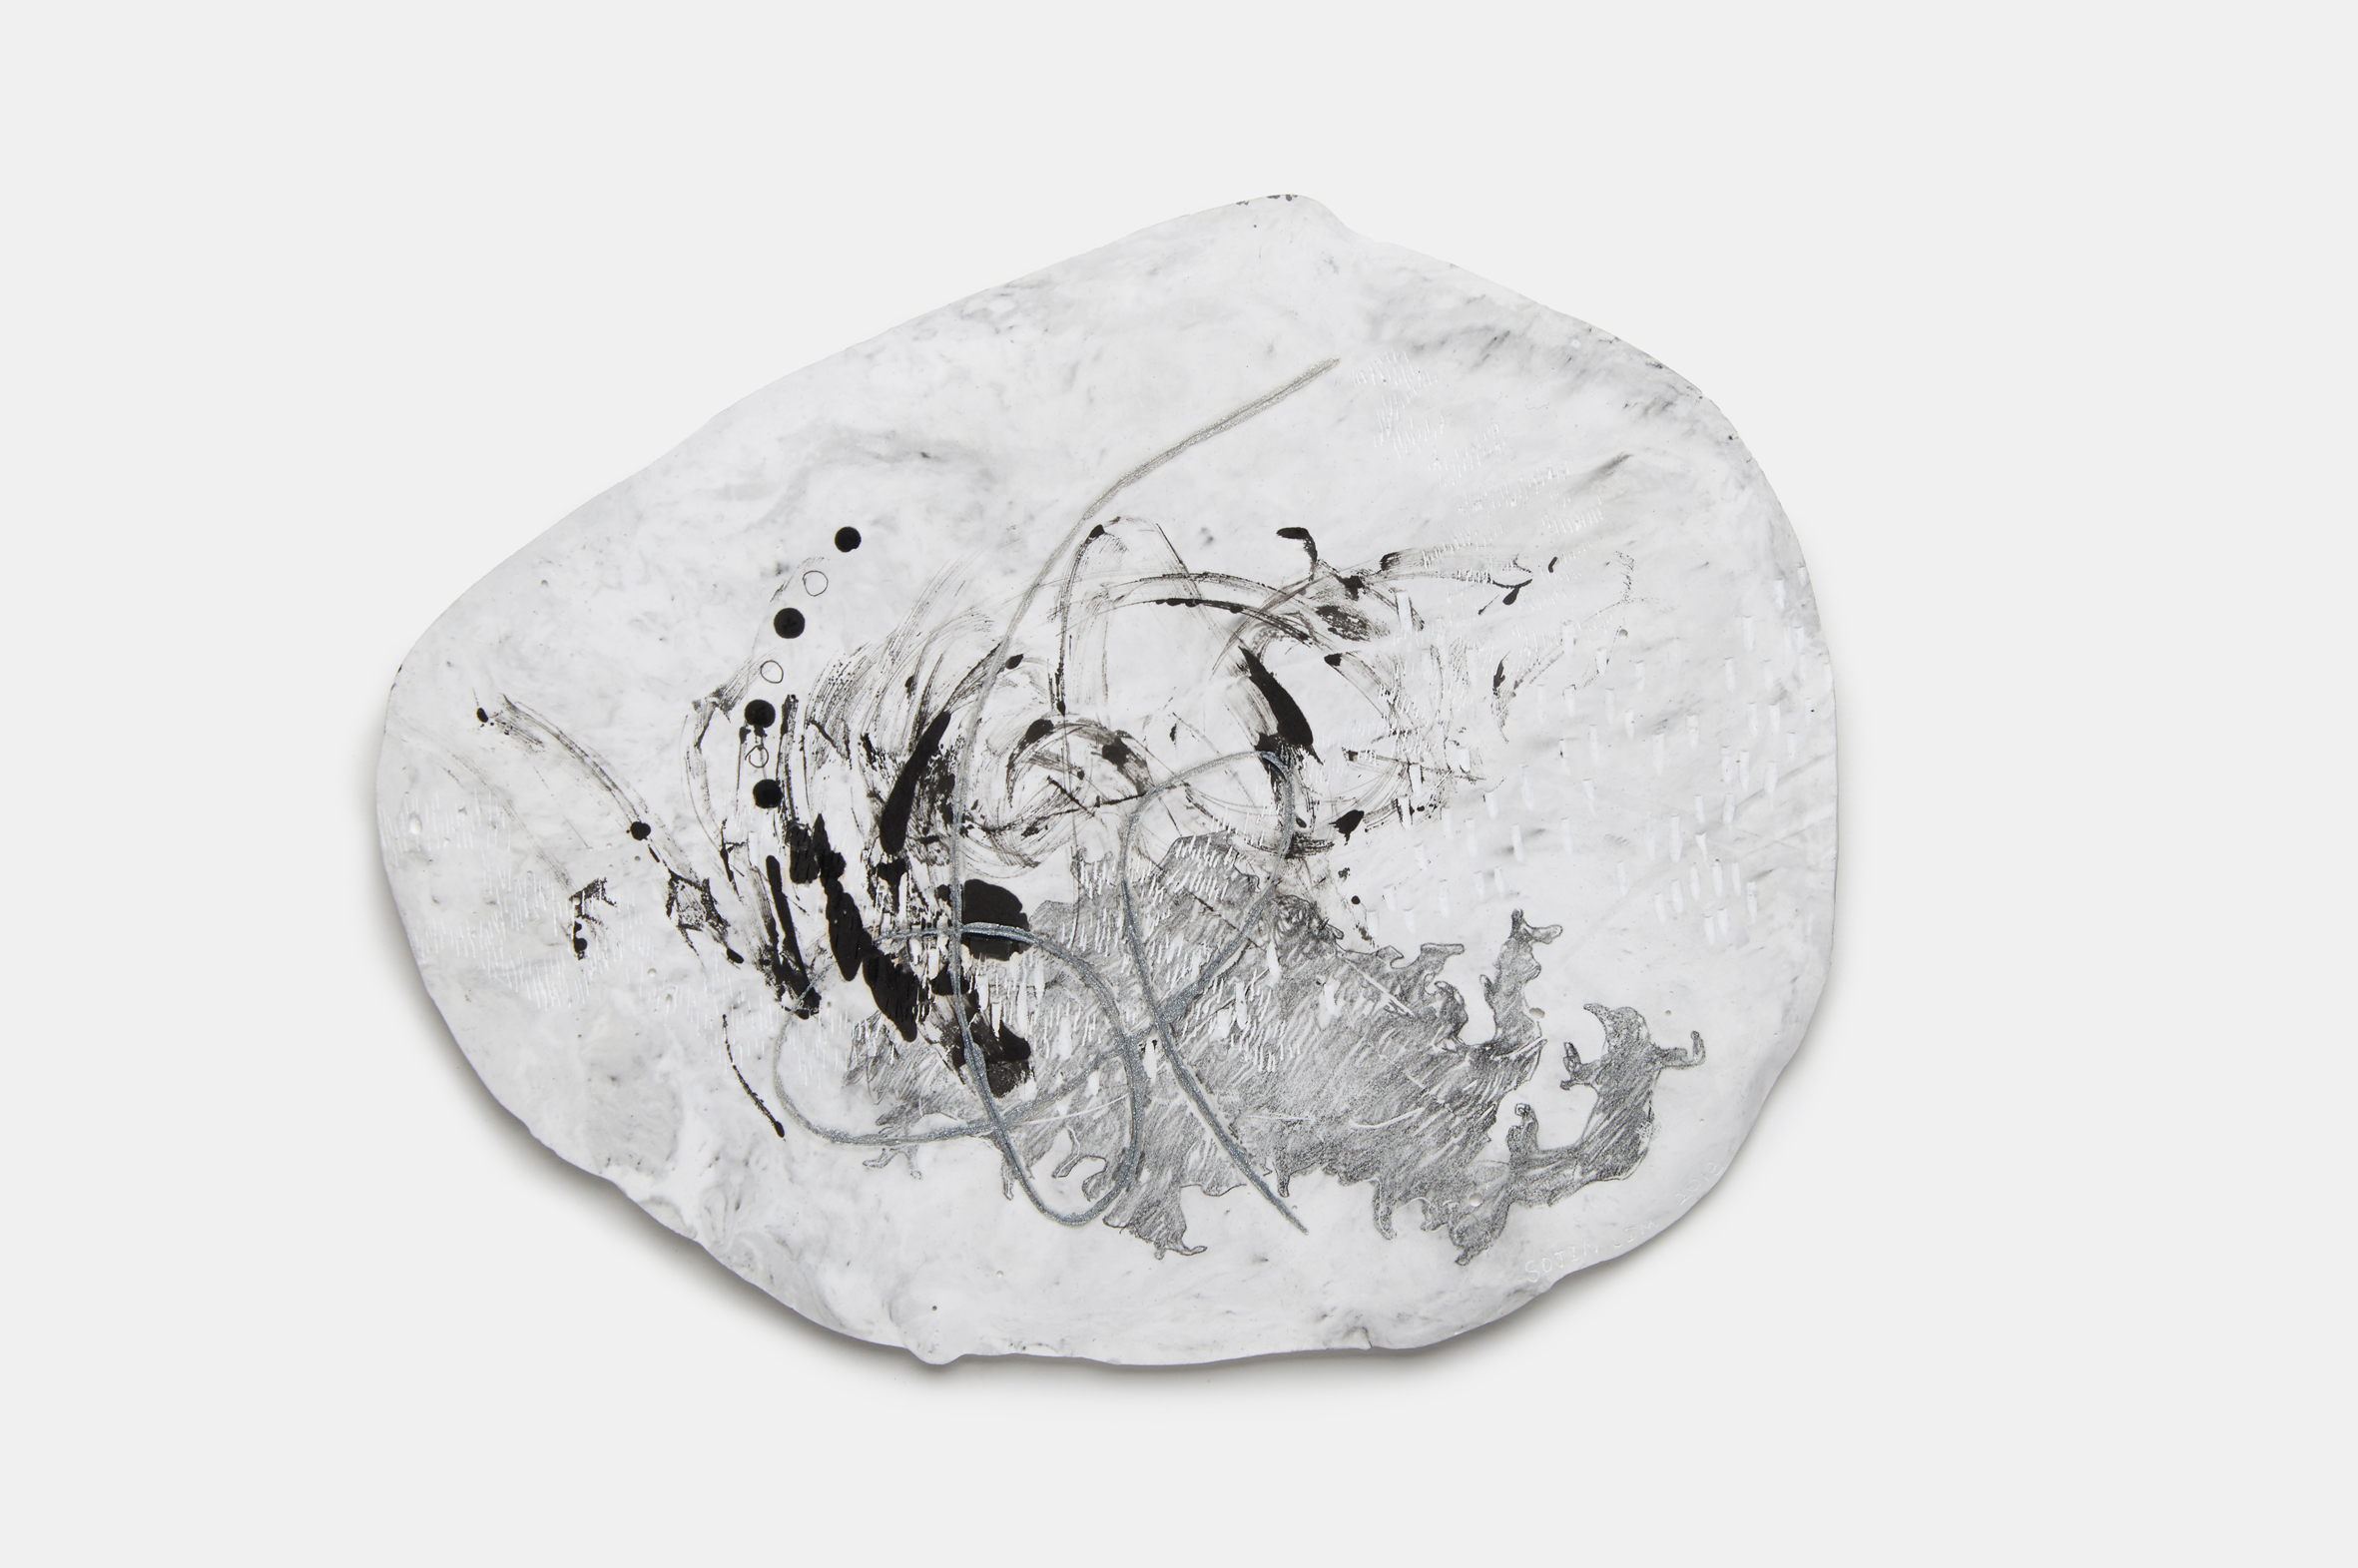 Vomit series #1  Engraving on plaster panel, mixture of ink and dry materials, silver sumi ink, pencil 24x19cm 2018